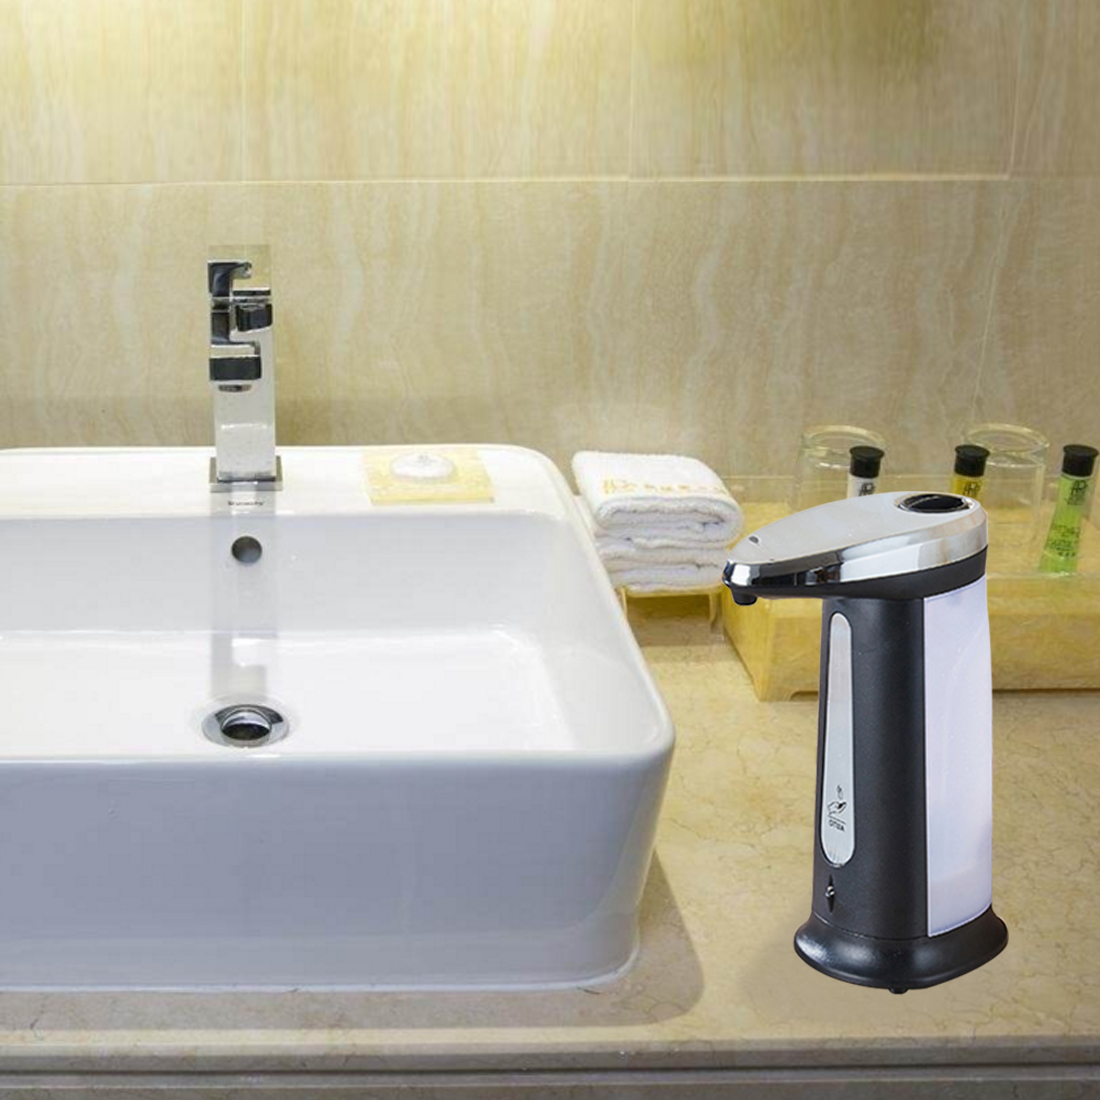 Hot 400Ml ABS Electroplated Automatic Liquid Soap Dispenser Smart Sensor Touchless Sanitizer for Kitchen Bathroom